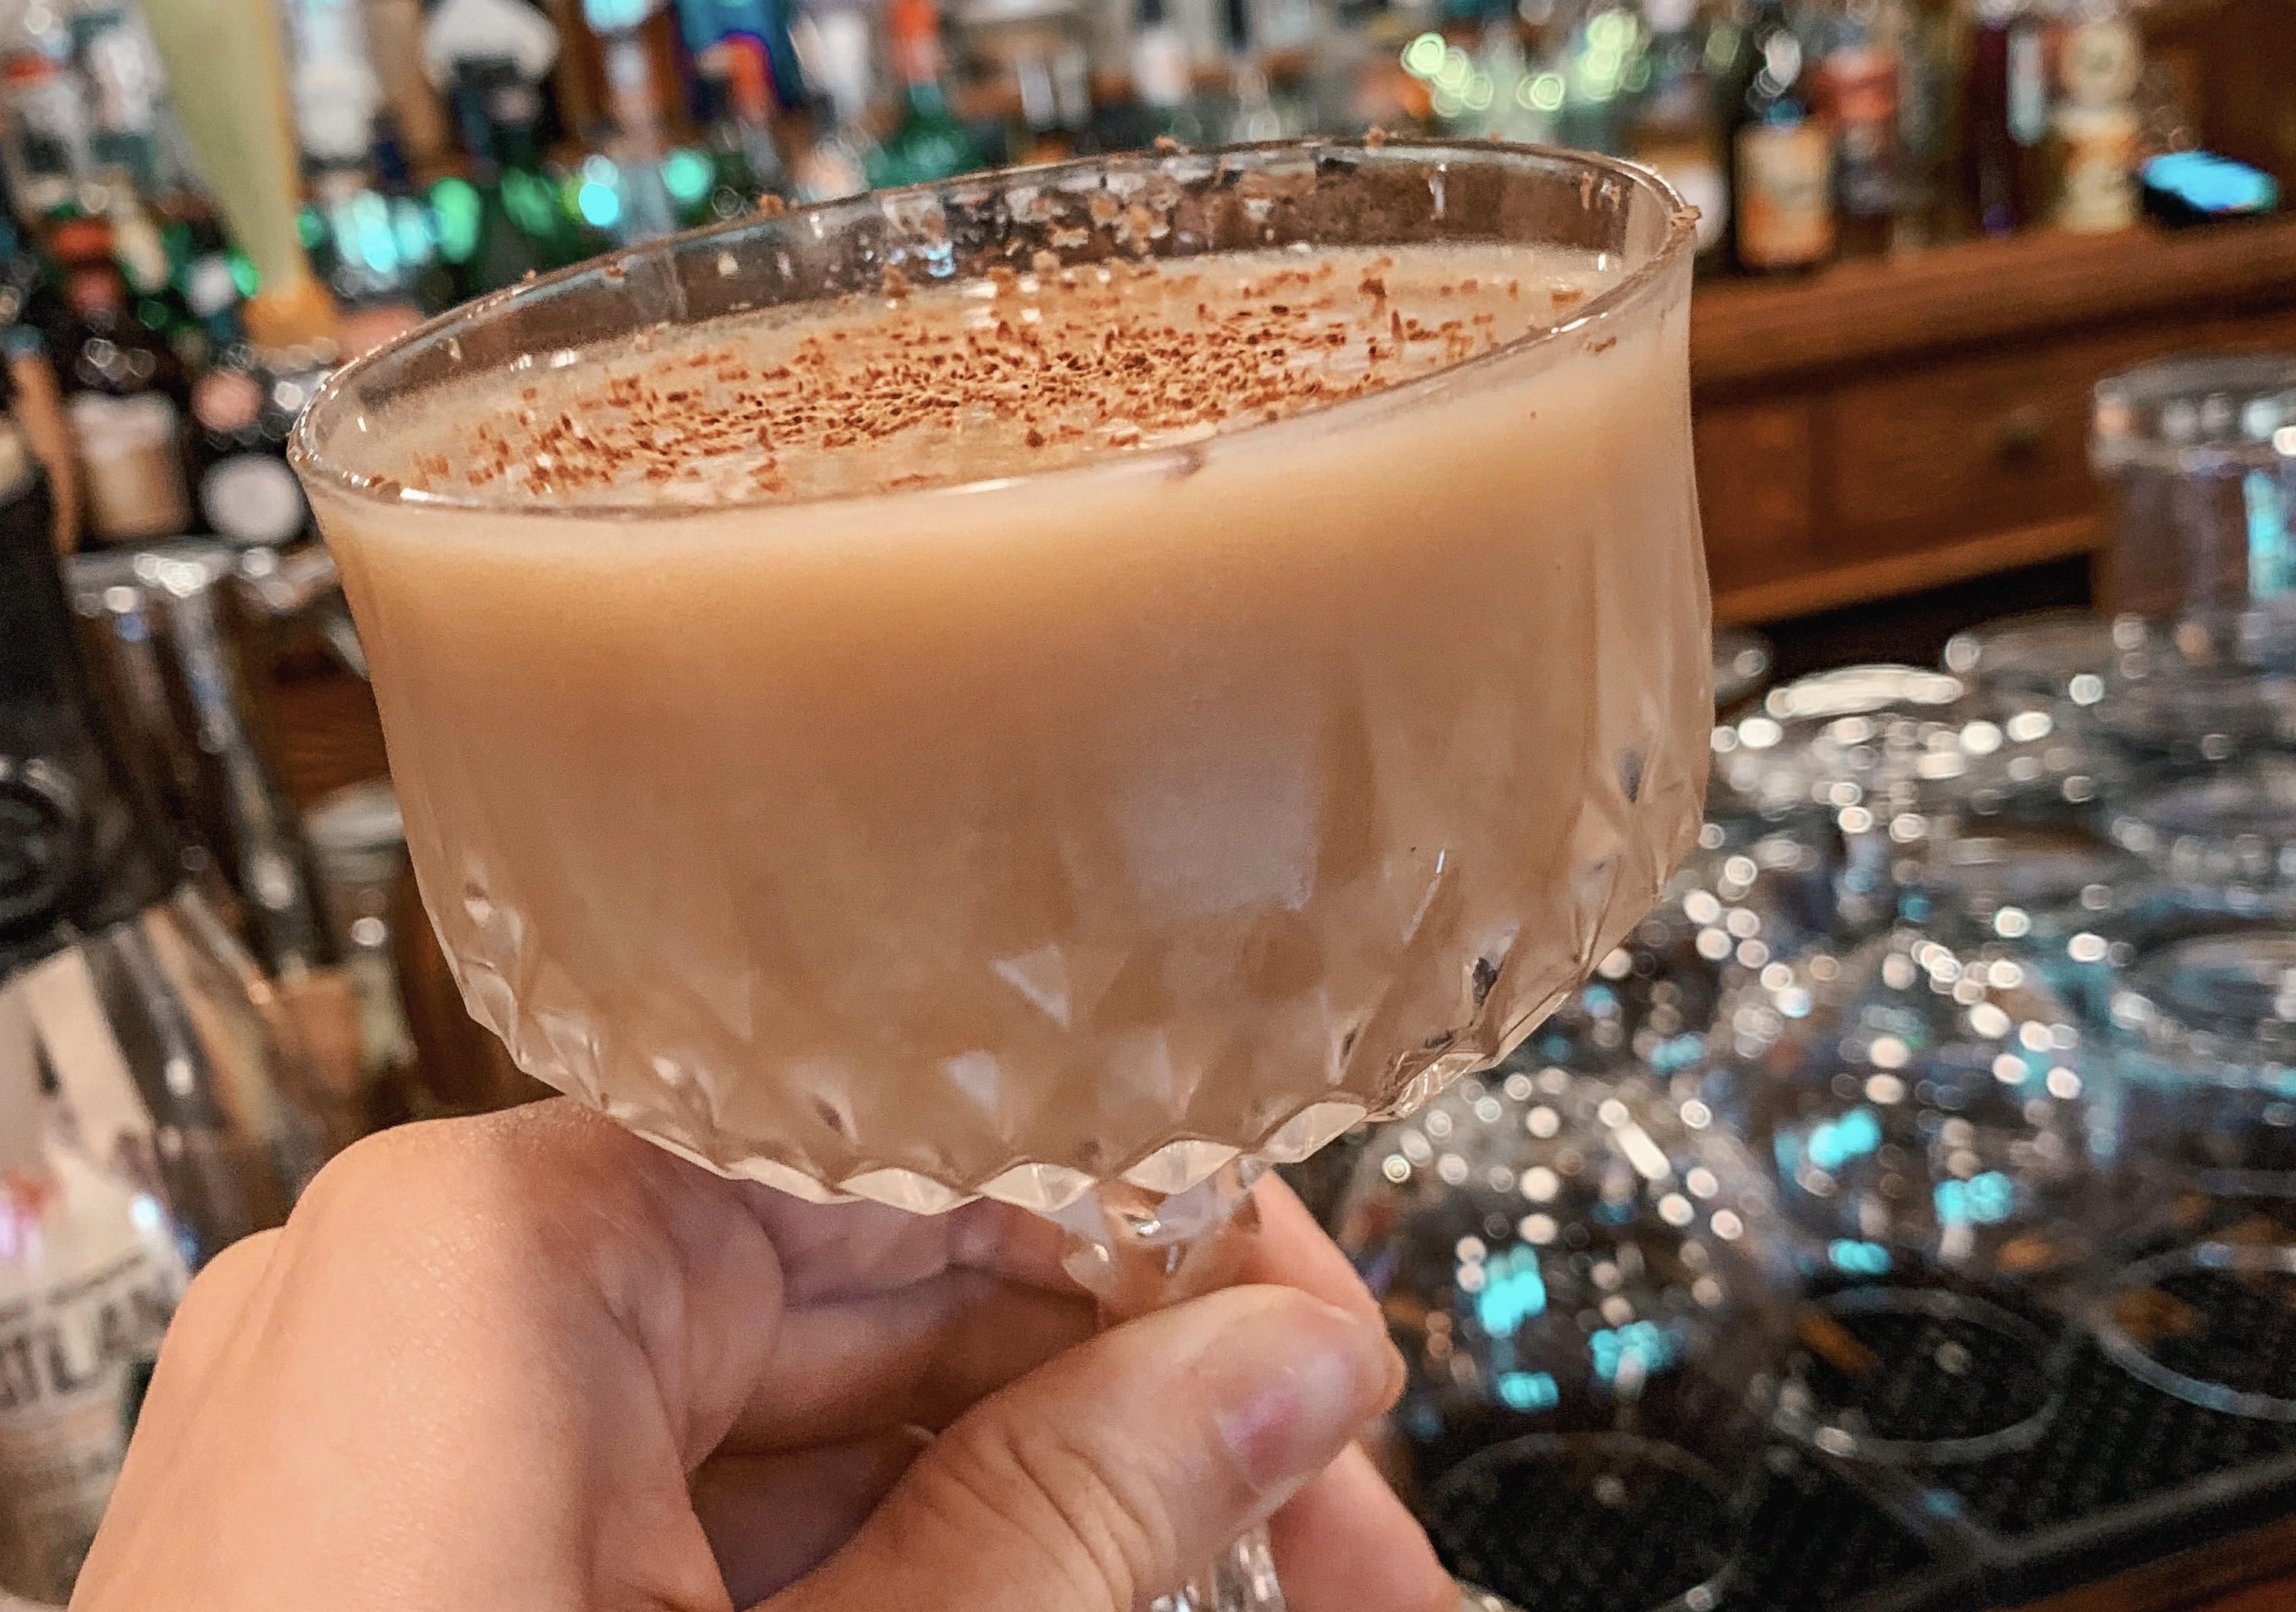 Chocolate [Martinis] are for Lovers